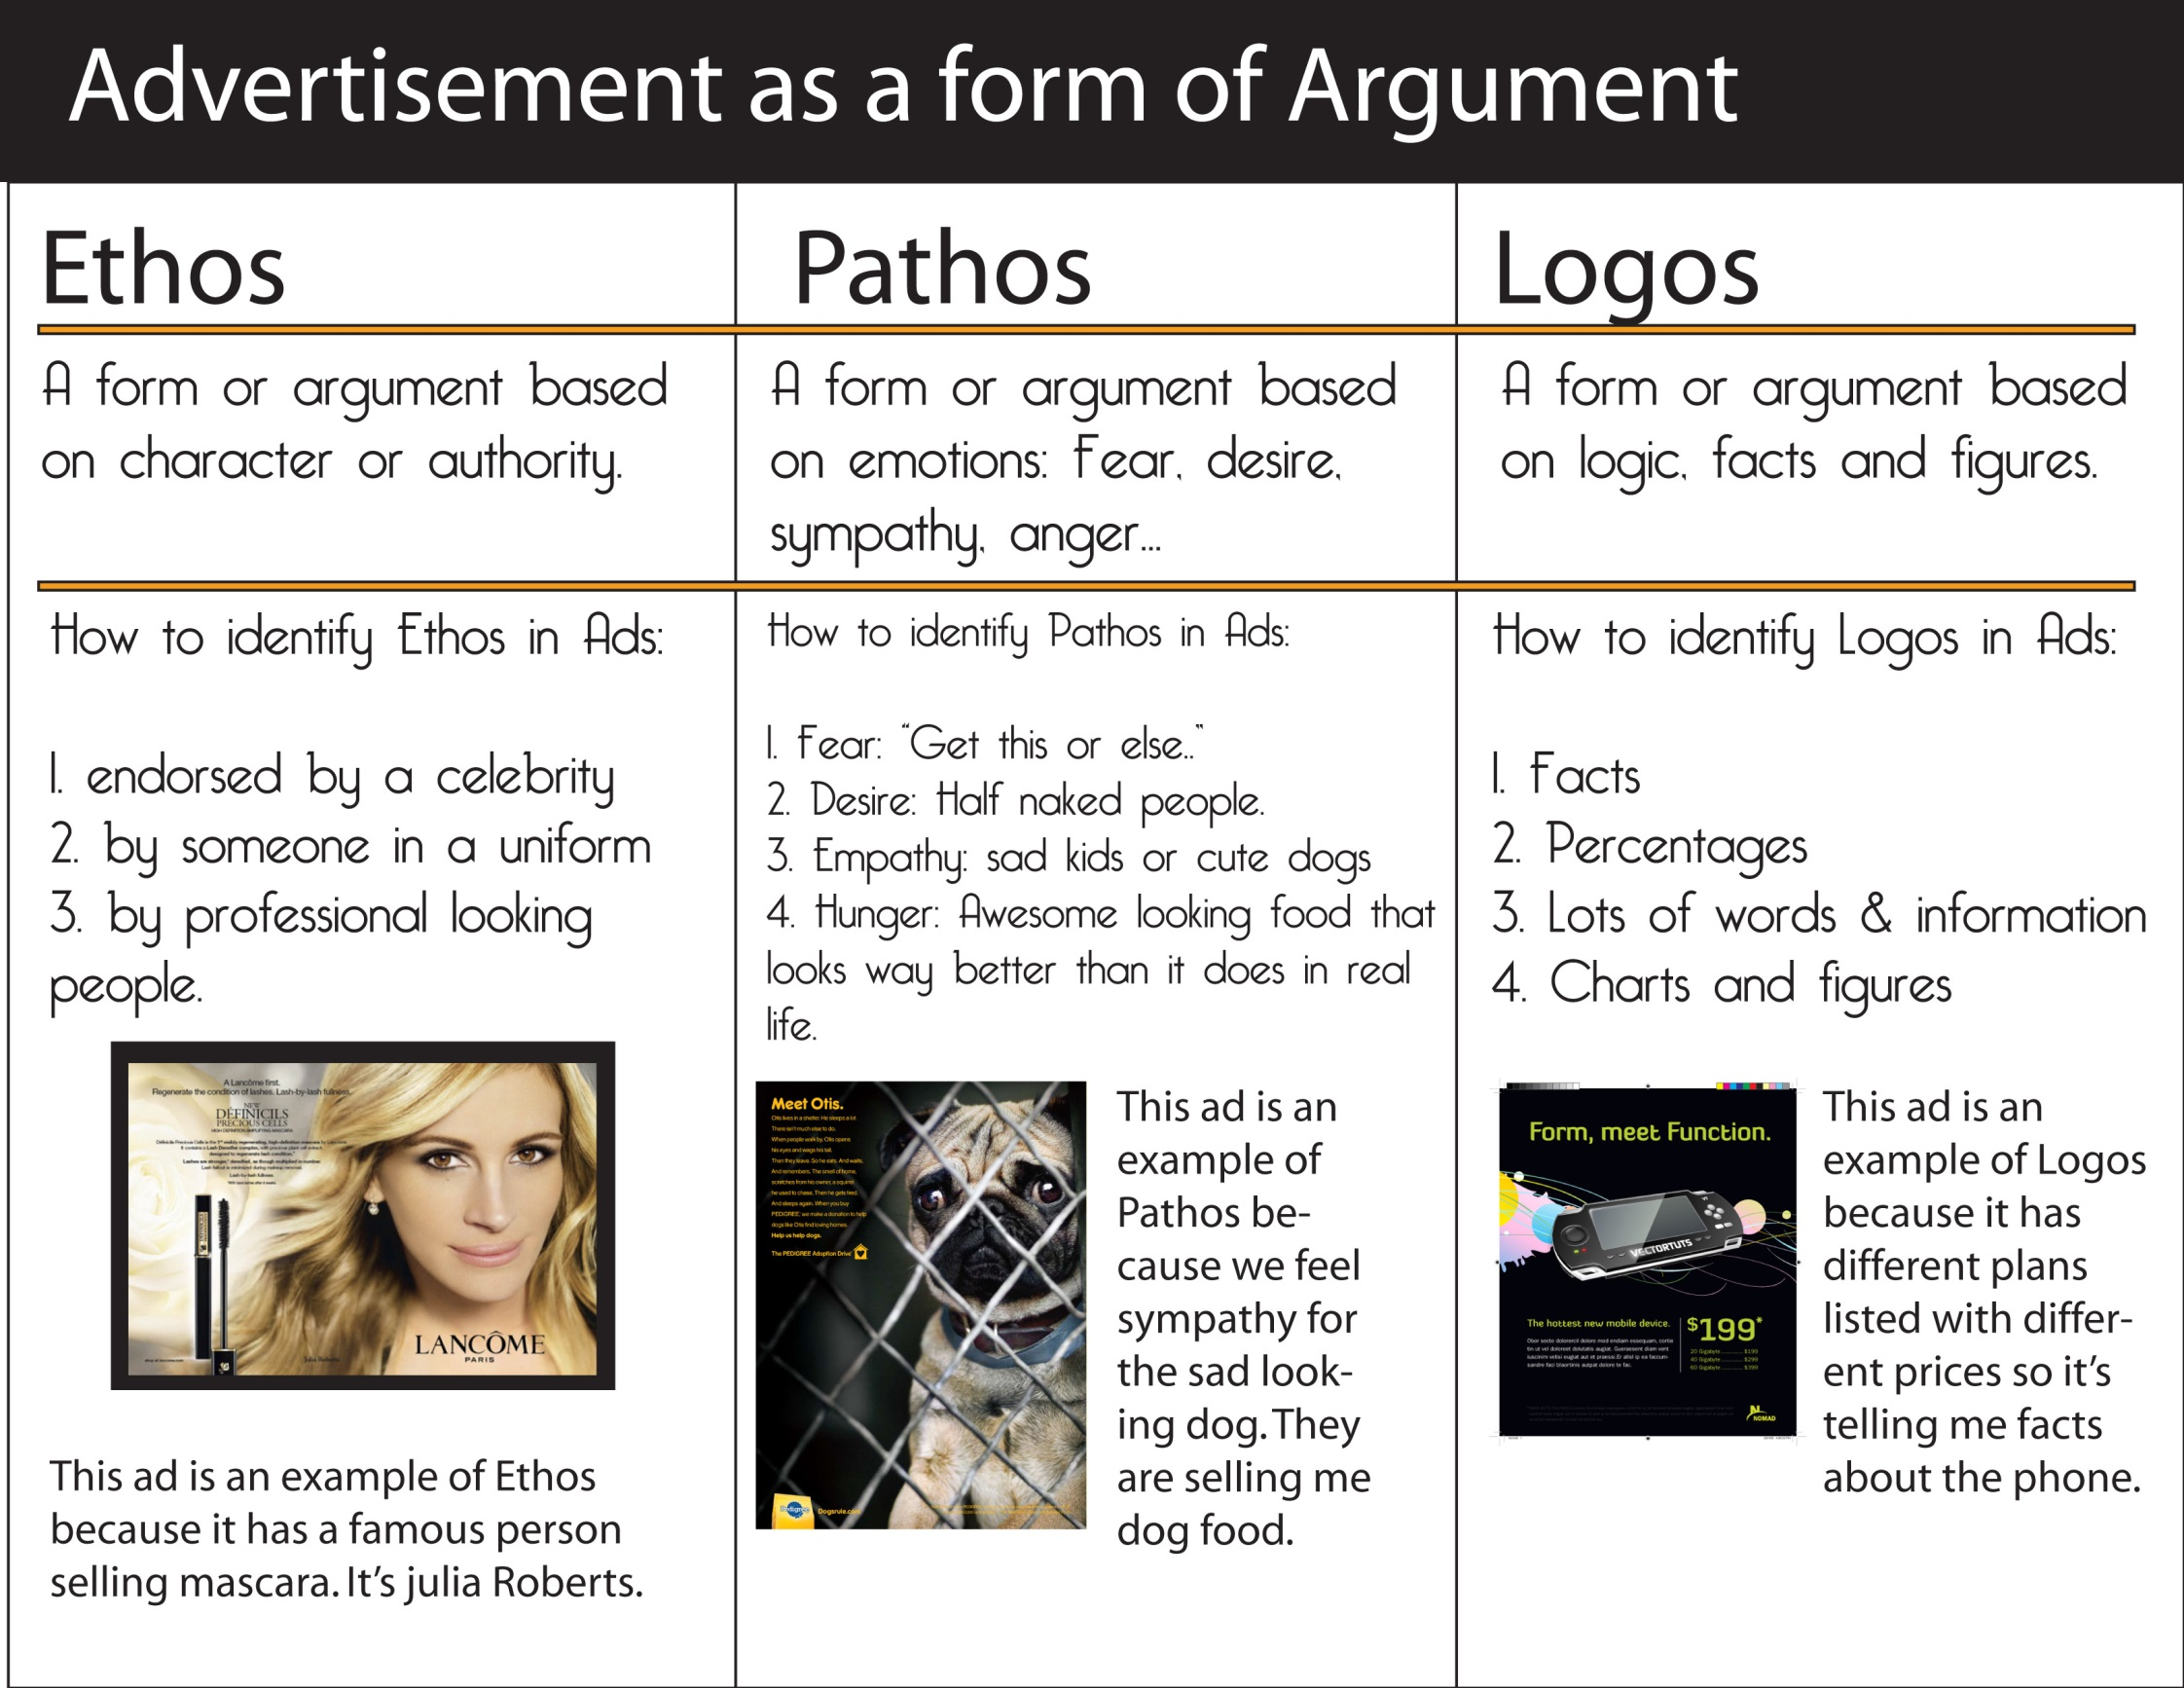 Cross Culturalysis Of Advertising Project